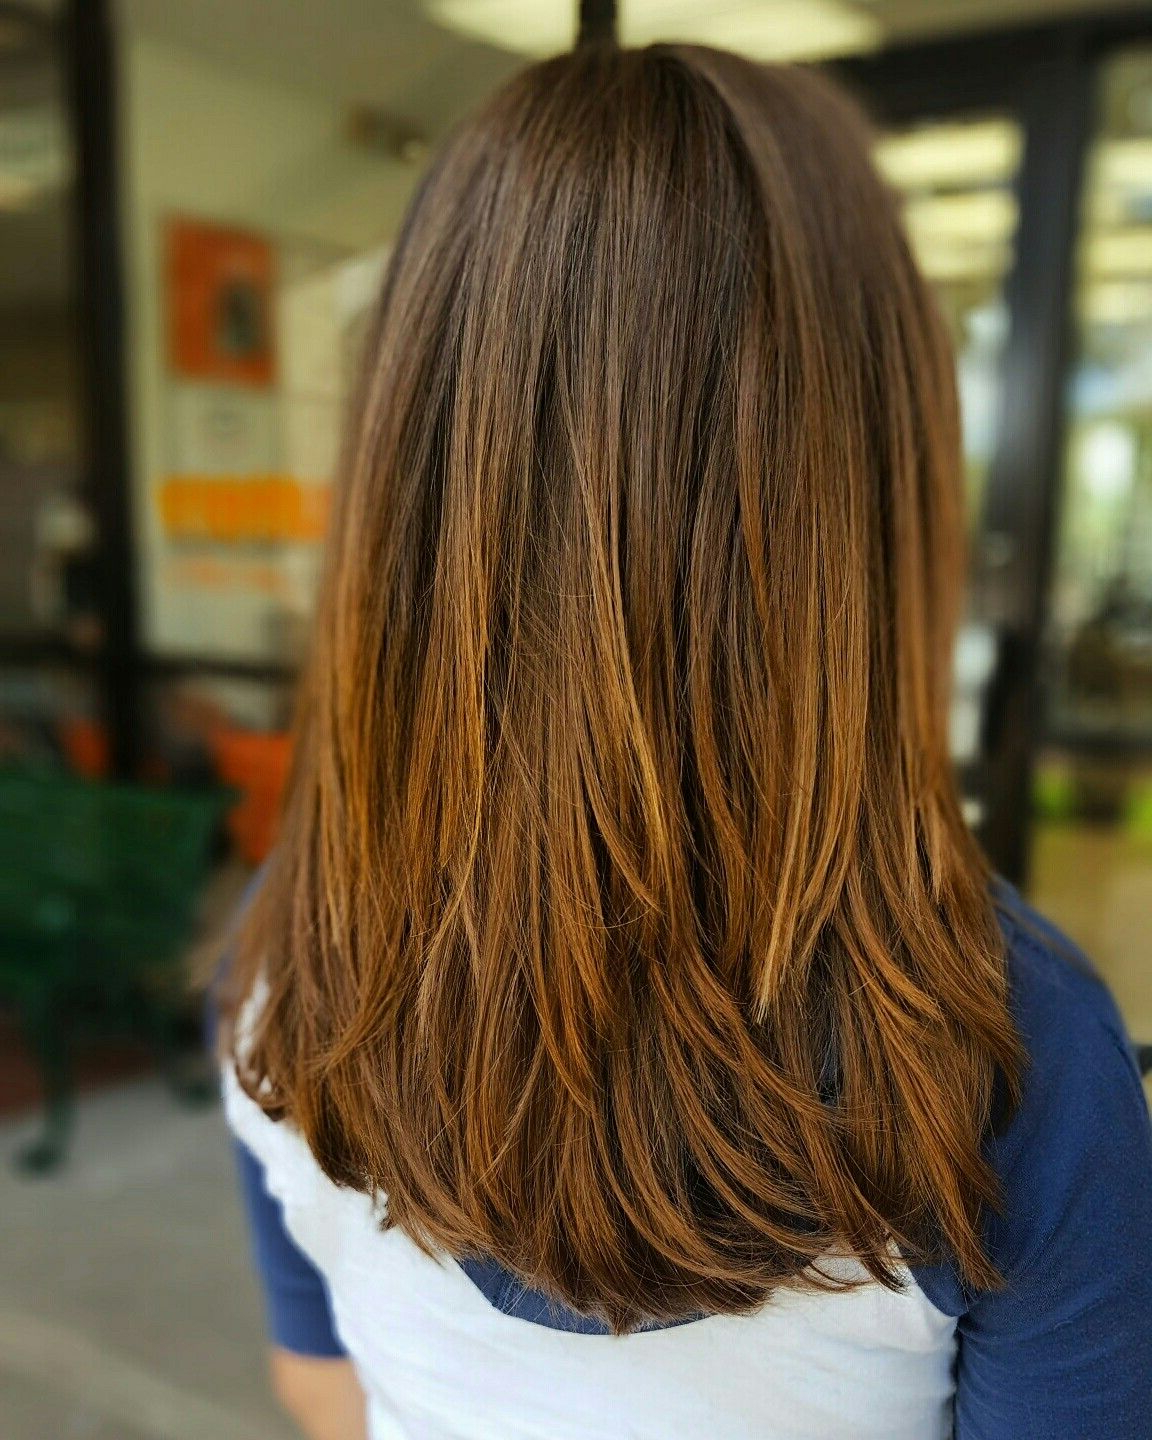 Best And Newest Layered Medium Hairstyles For Medium Hairstyle : Hairstyles For Medium Layered Hair Haircut Layers (View 8 of 20)